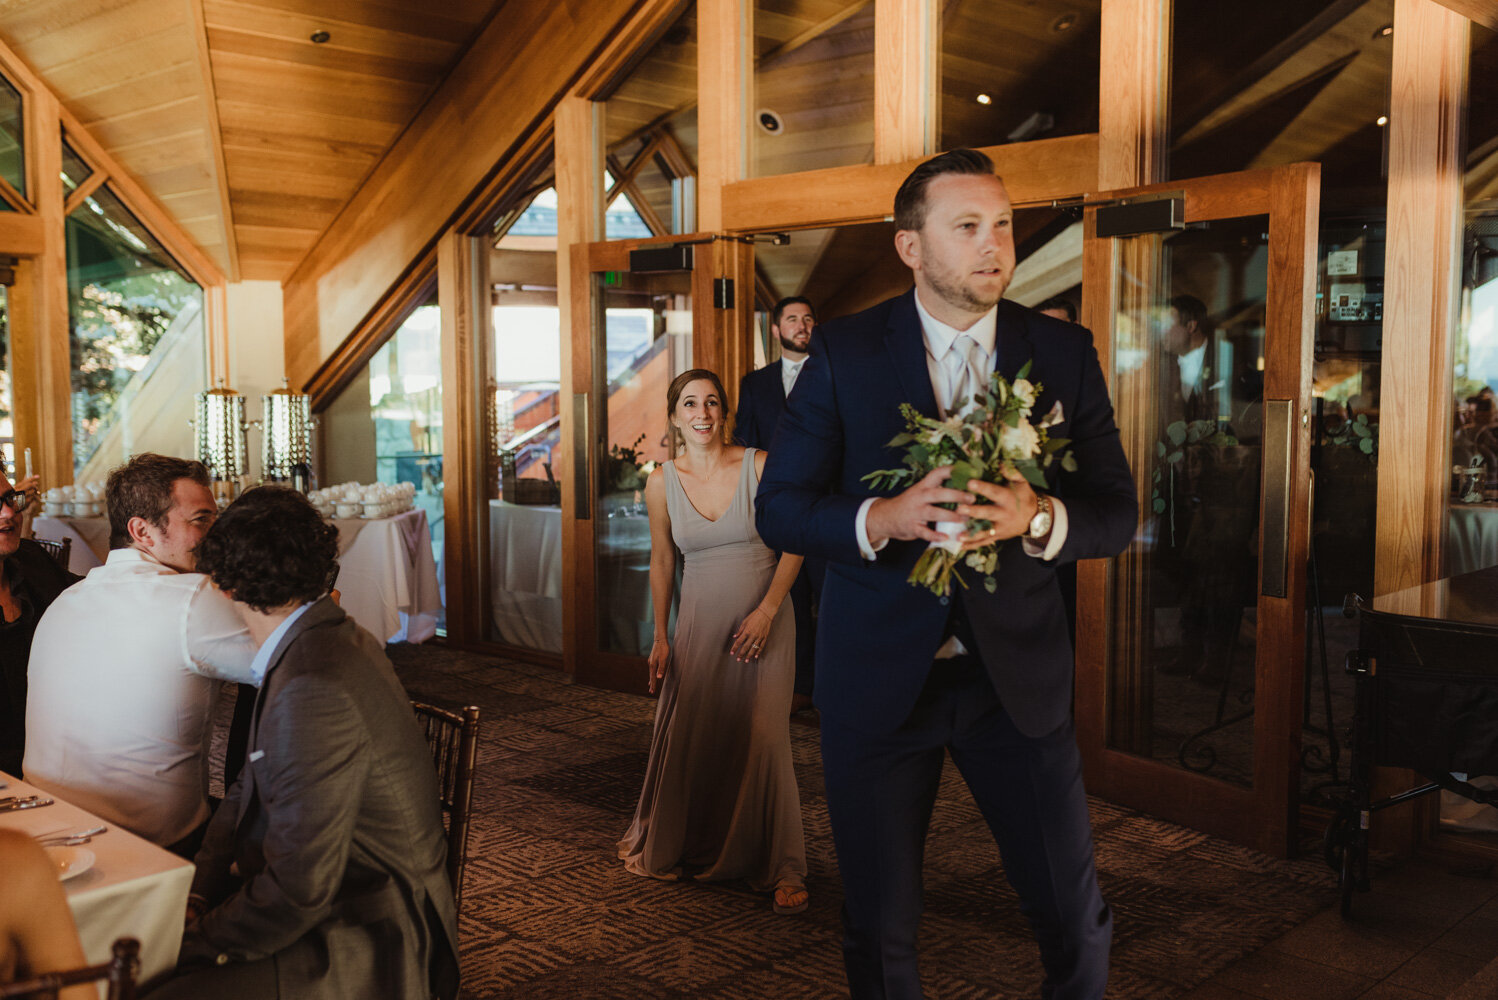 Edgewood Tahoe Wedding, candid photo of guest